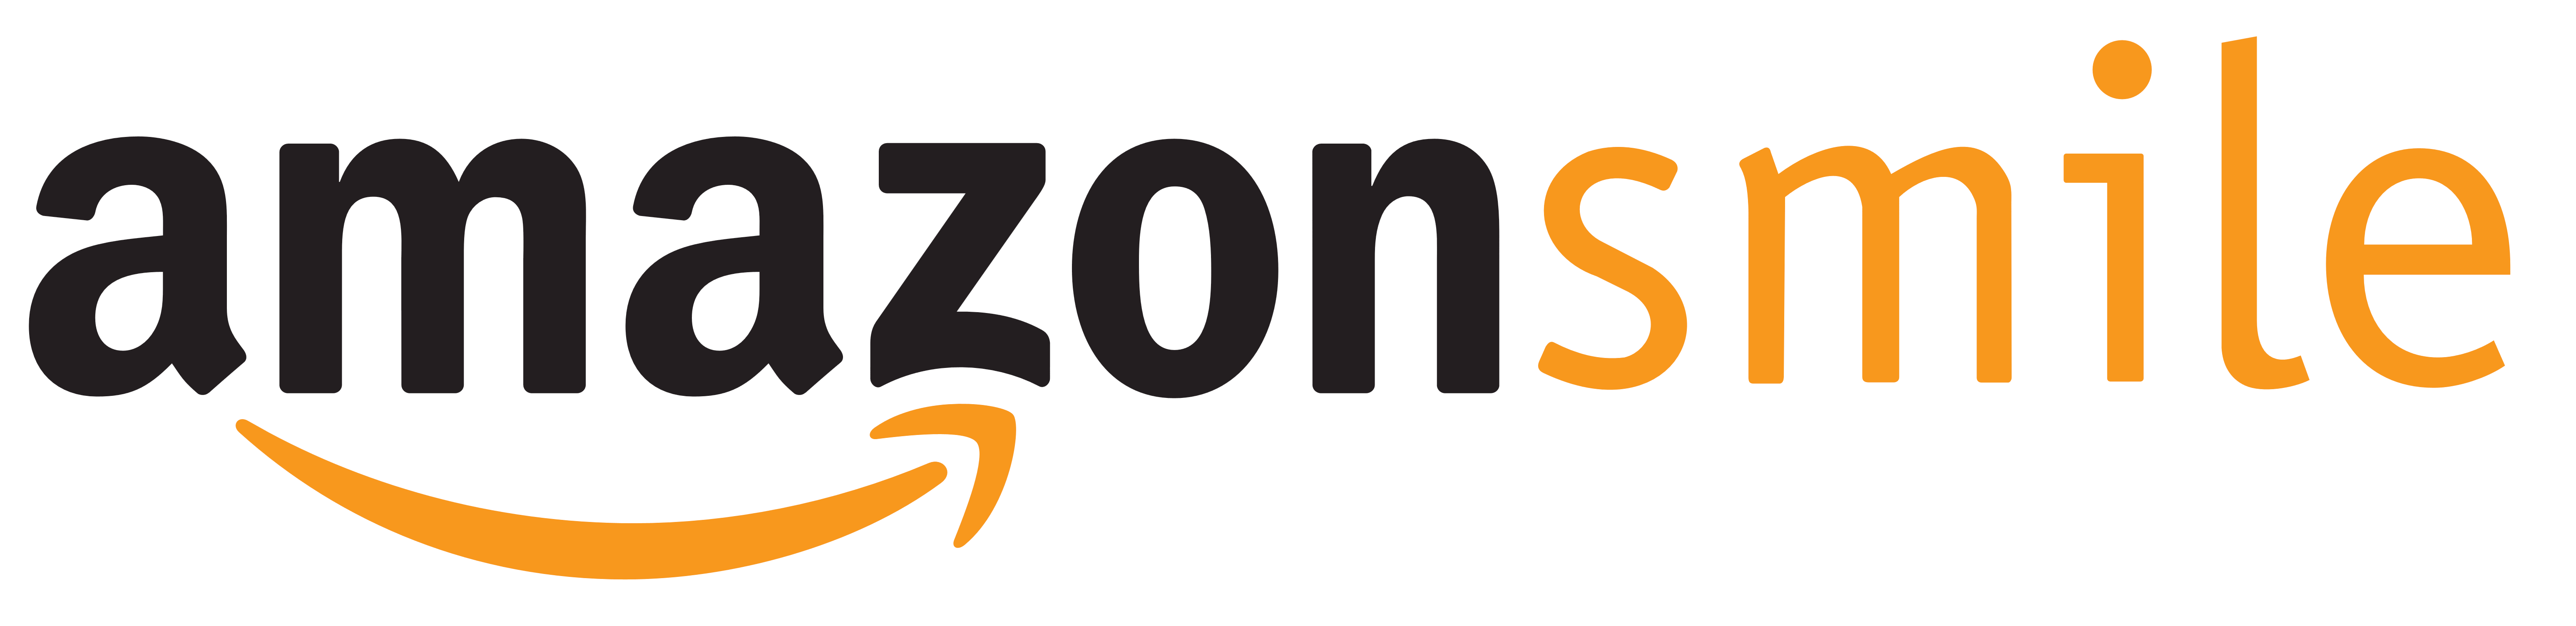 Amazon Smile. Amazon Smile logo - Amazon Logo Vector PNG